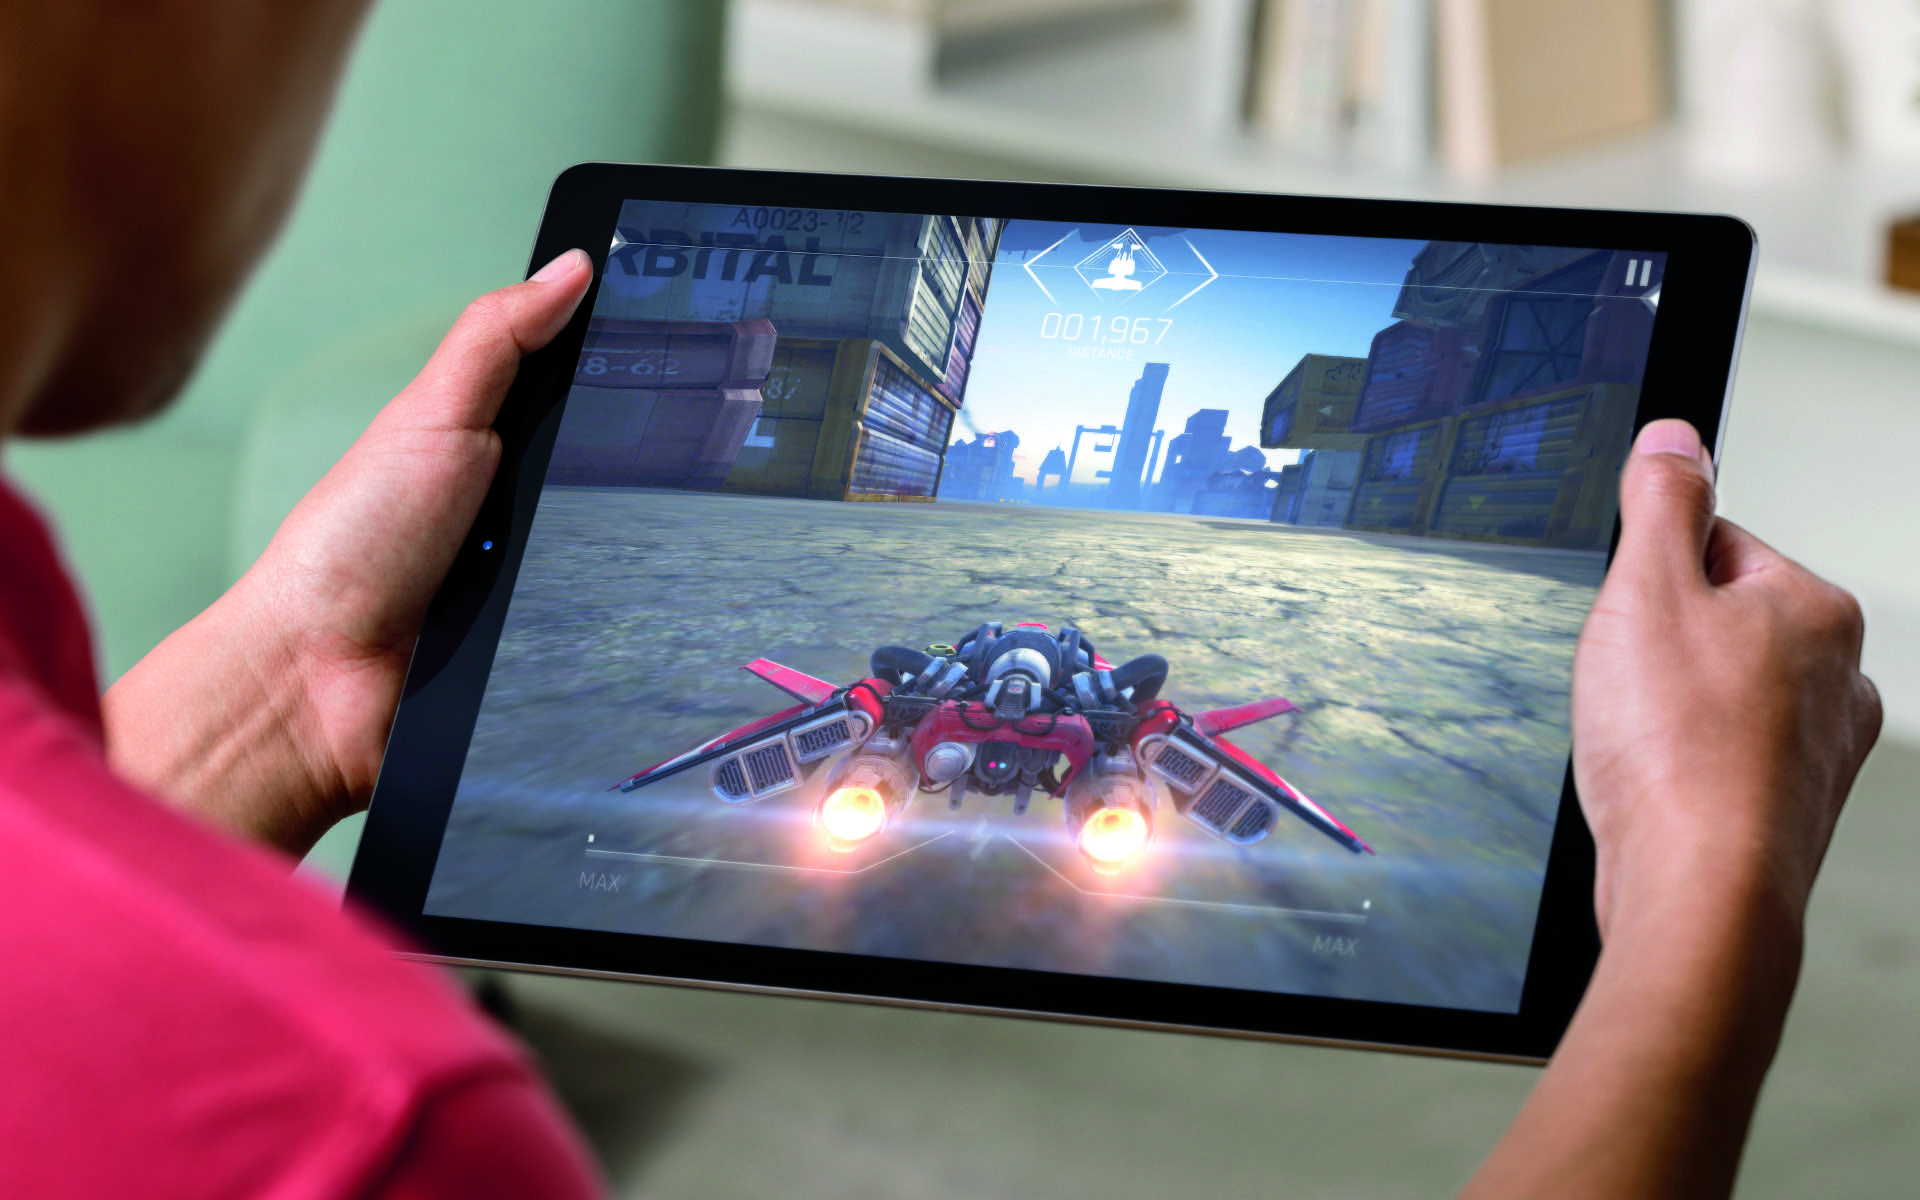 The iPad Pro display isn't as good as the iPad mini 4's